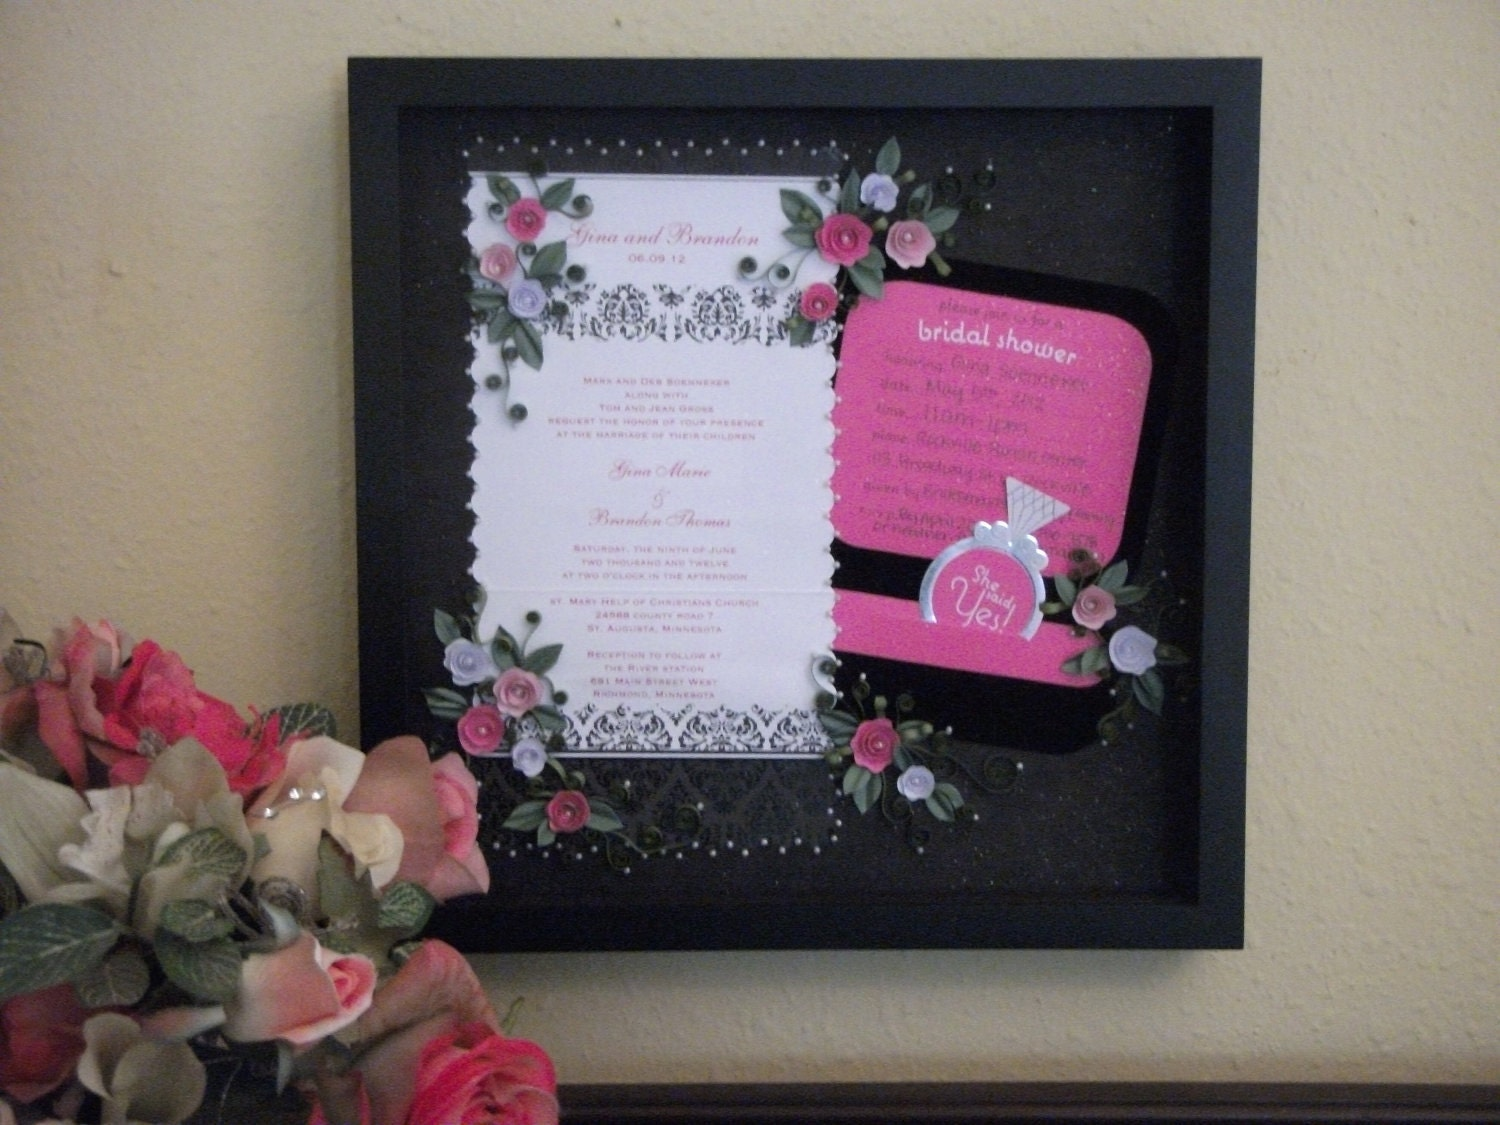 Wedding Invitation Gifts: Quilled Wedding Invitation Keepsake Under Glass. Something